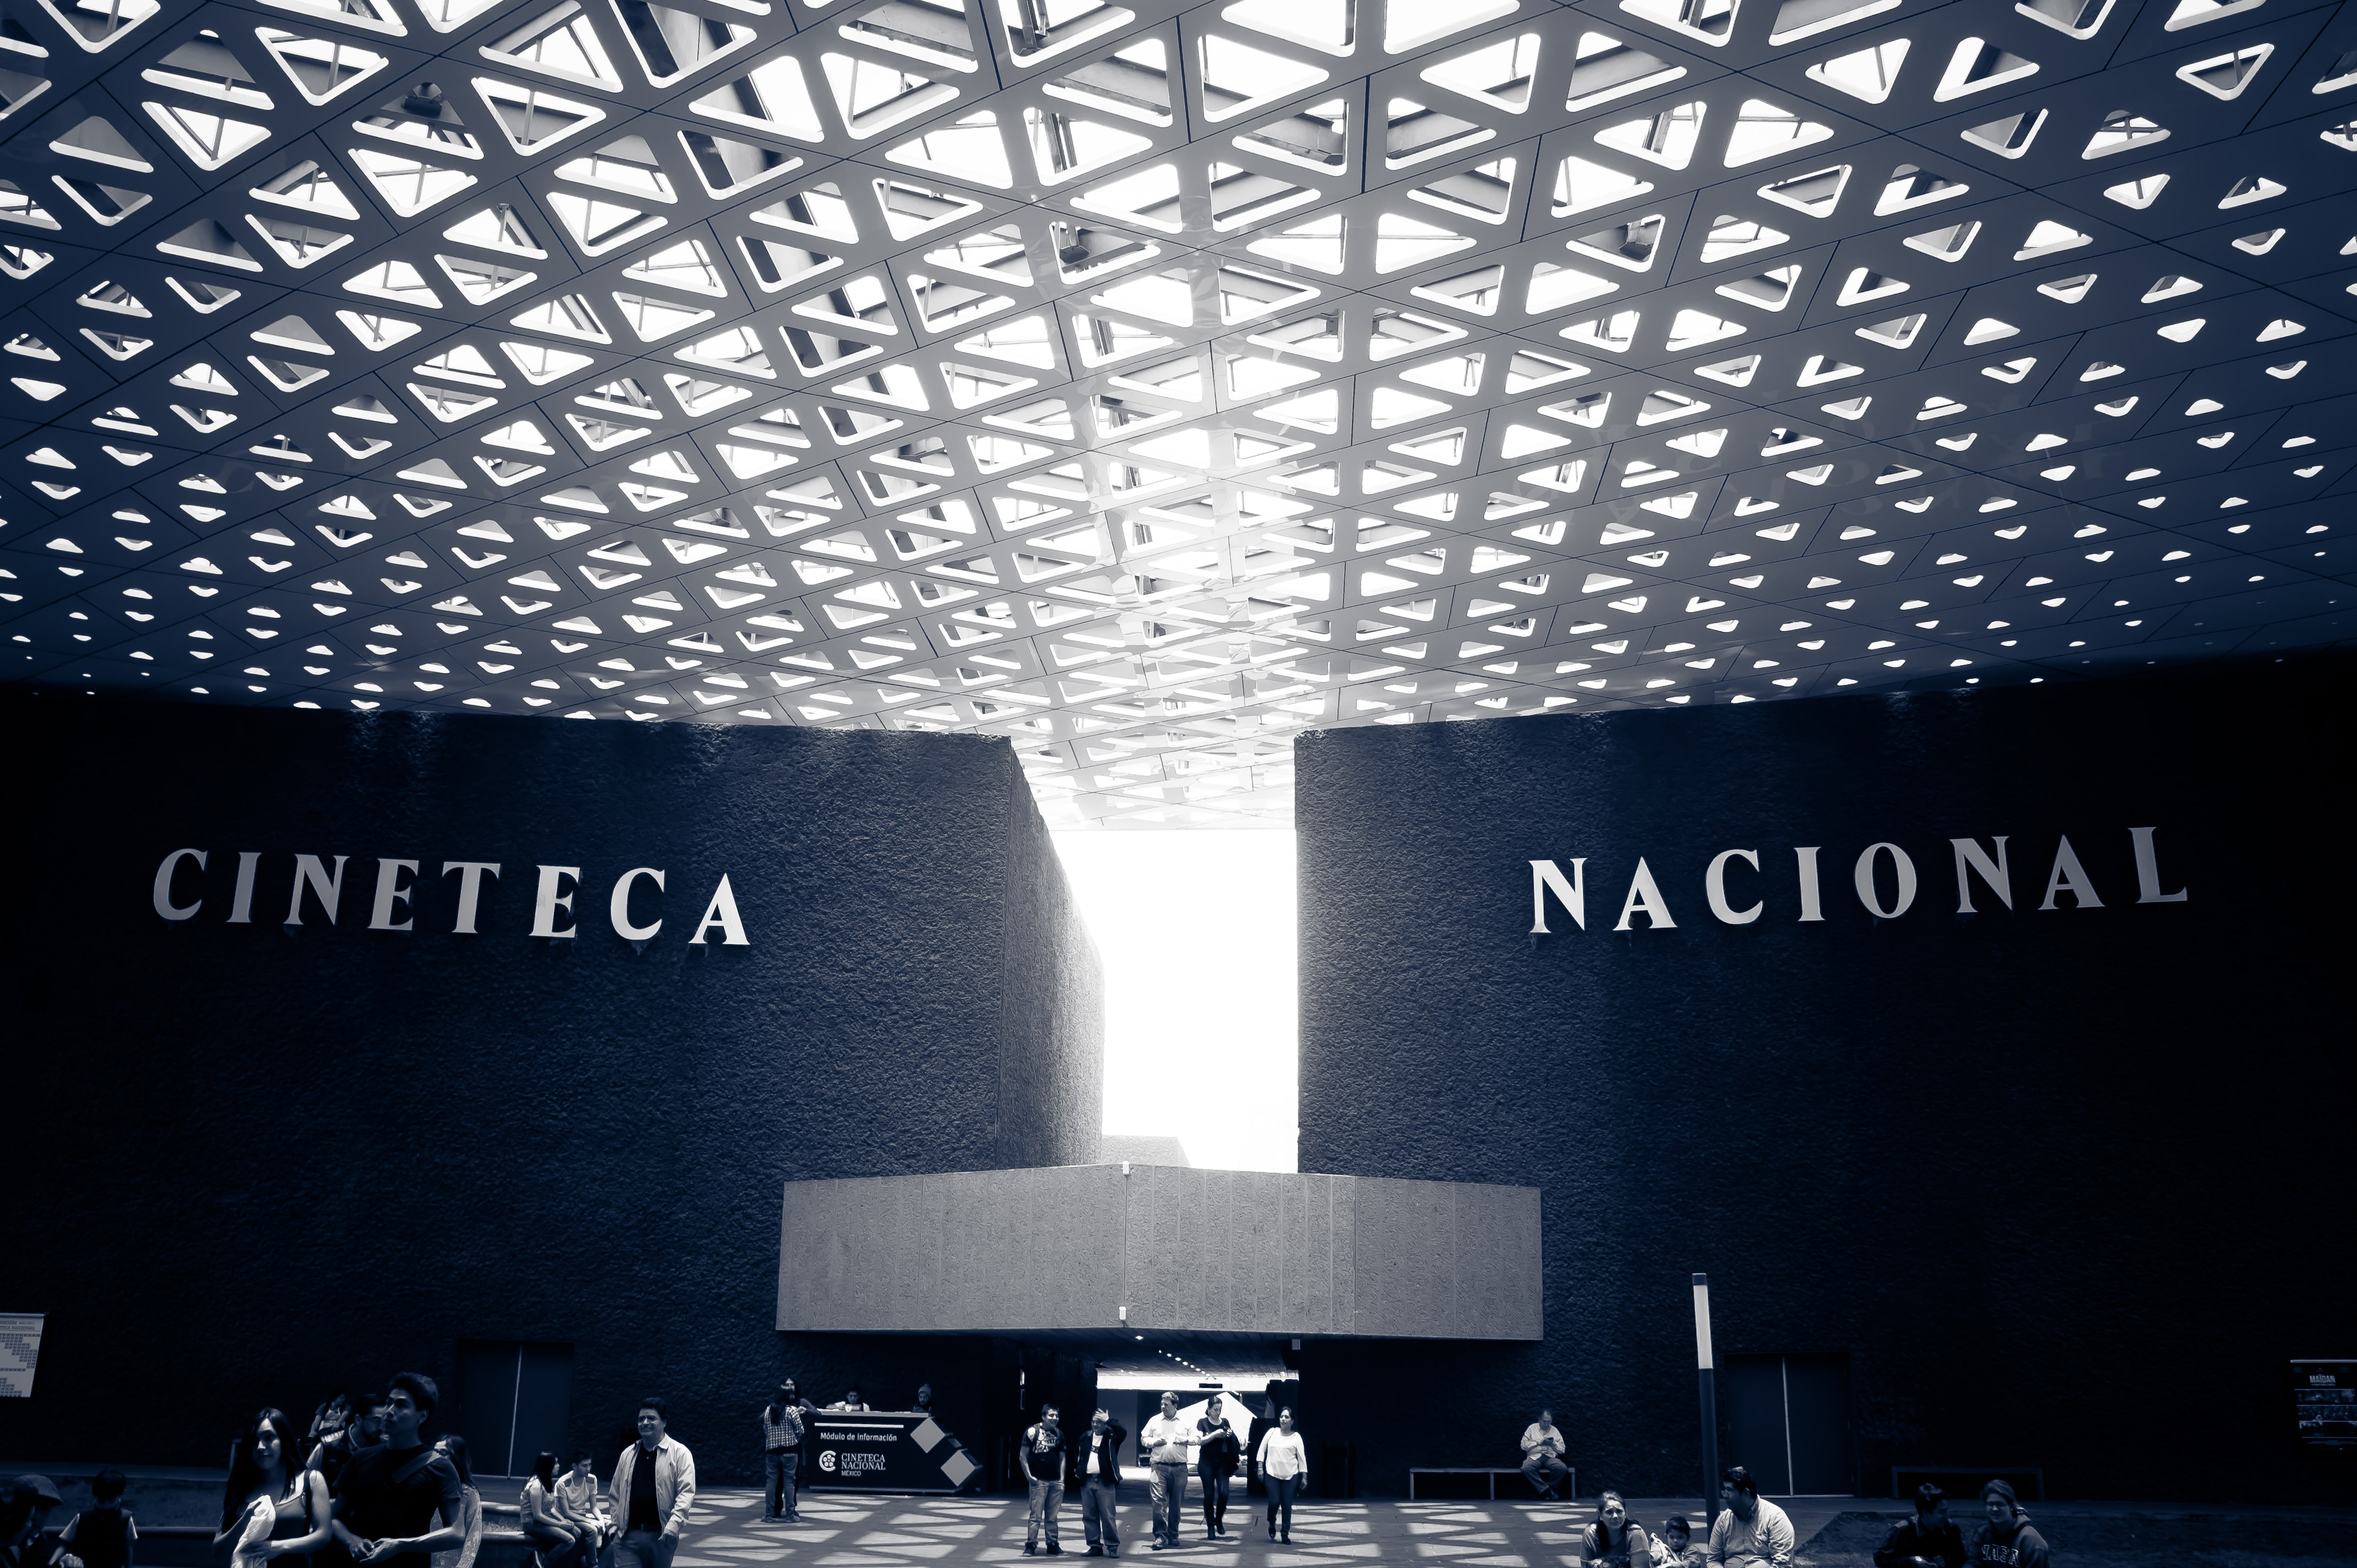 Cineteca Nacional | © W & J/Flickr